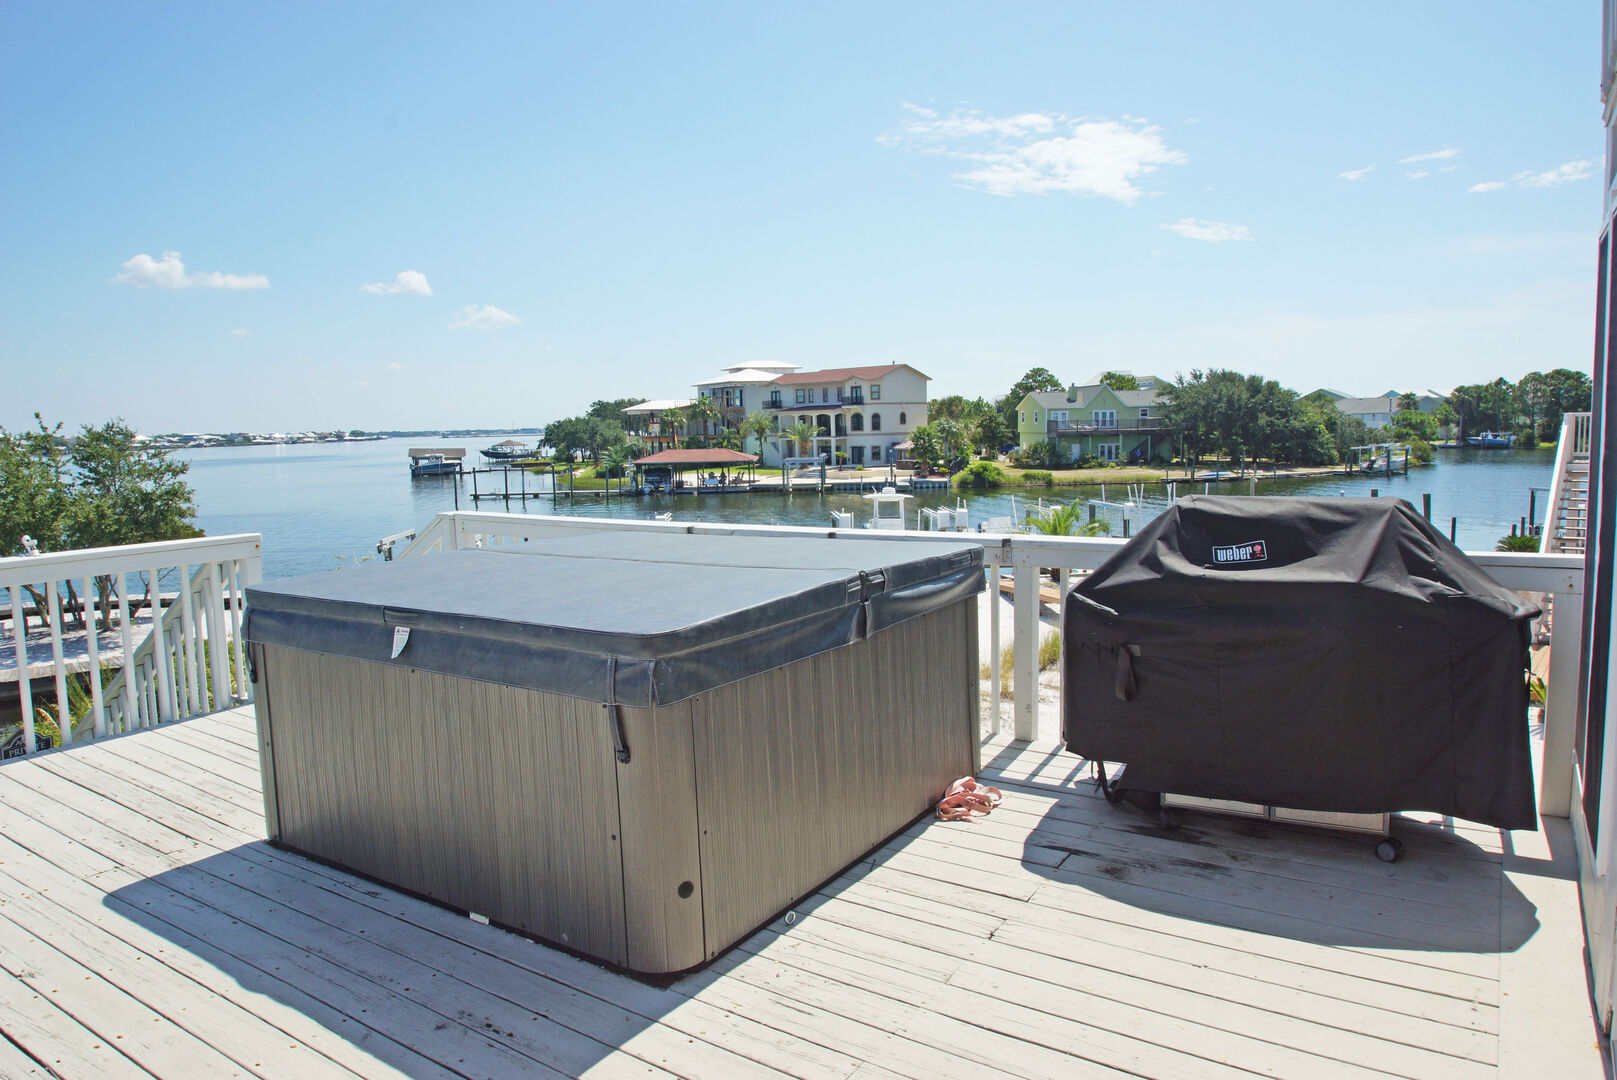 Relax in the hot tub after grilling up the catch of the day